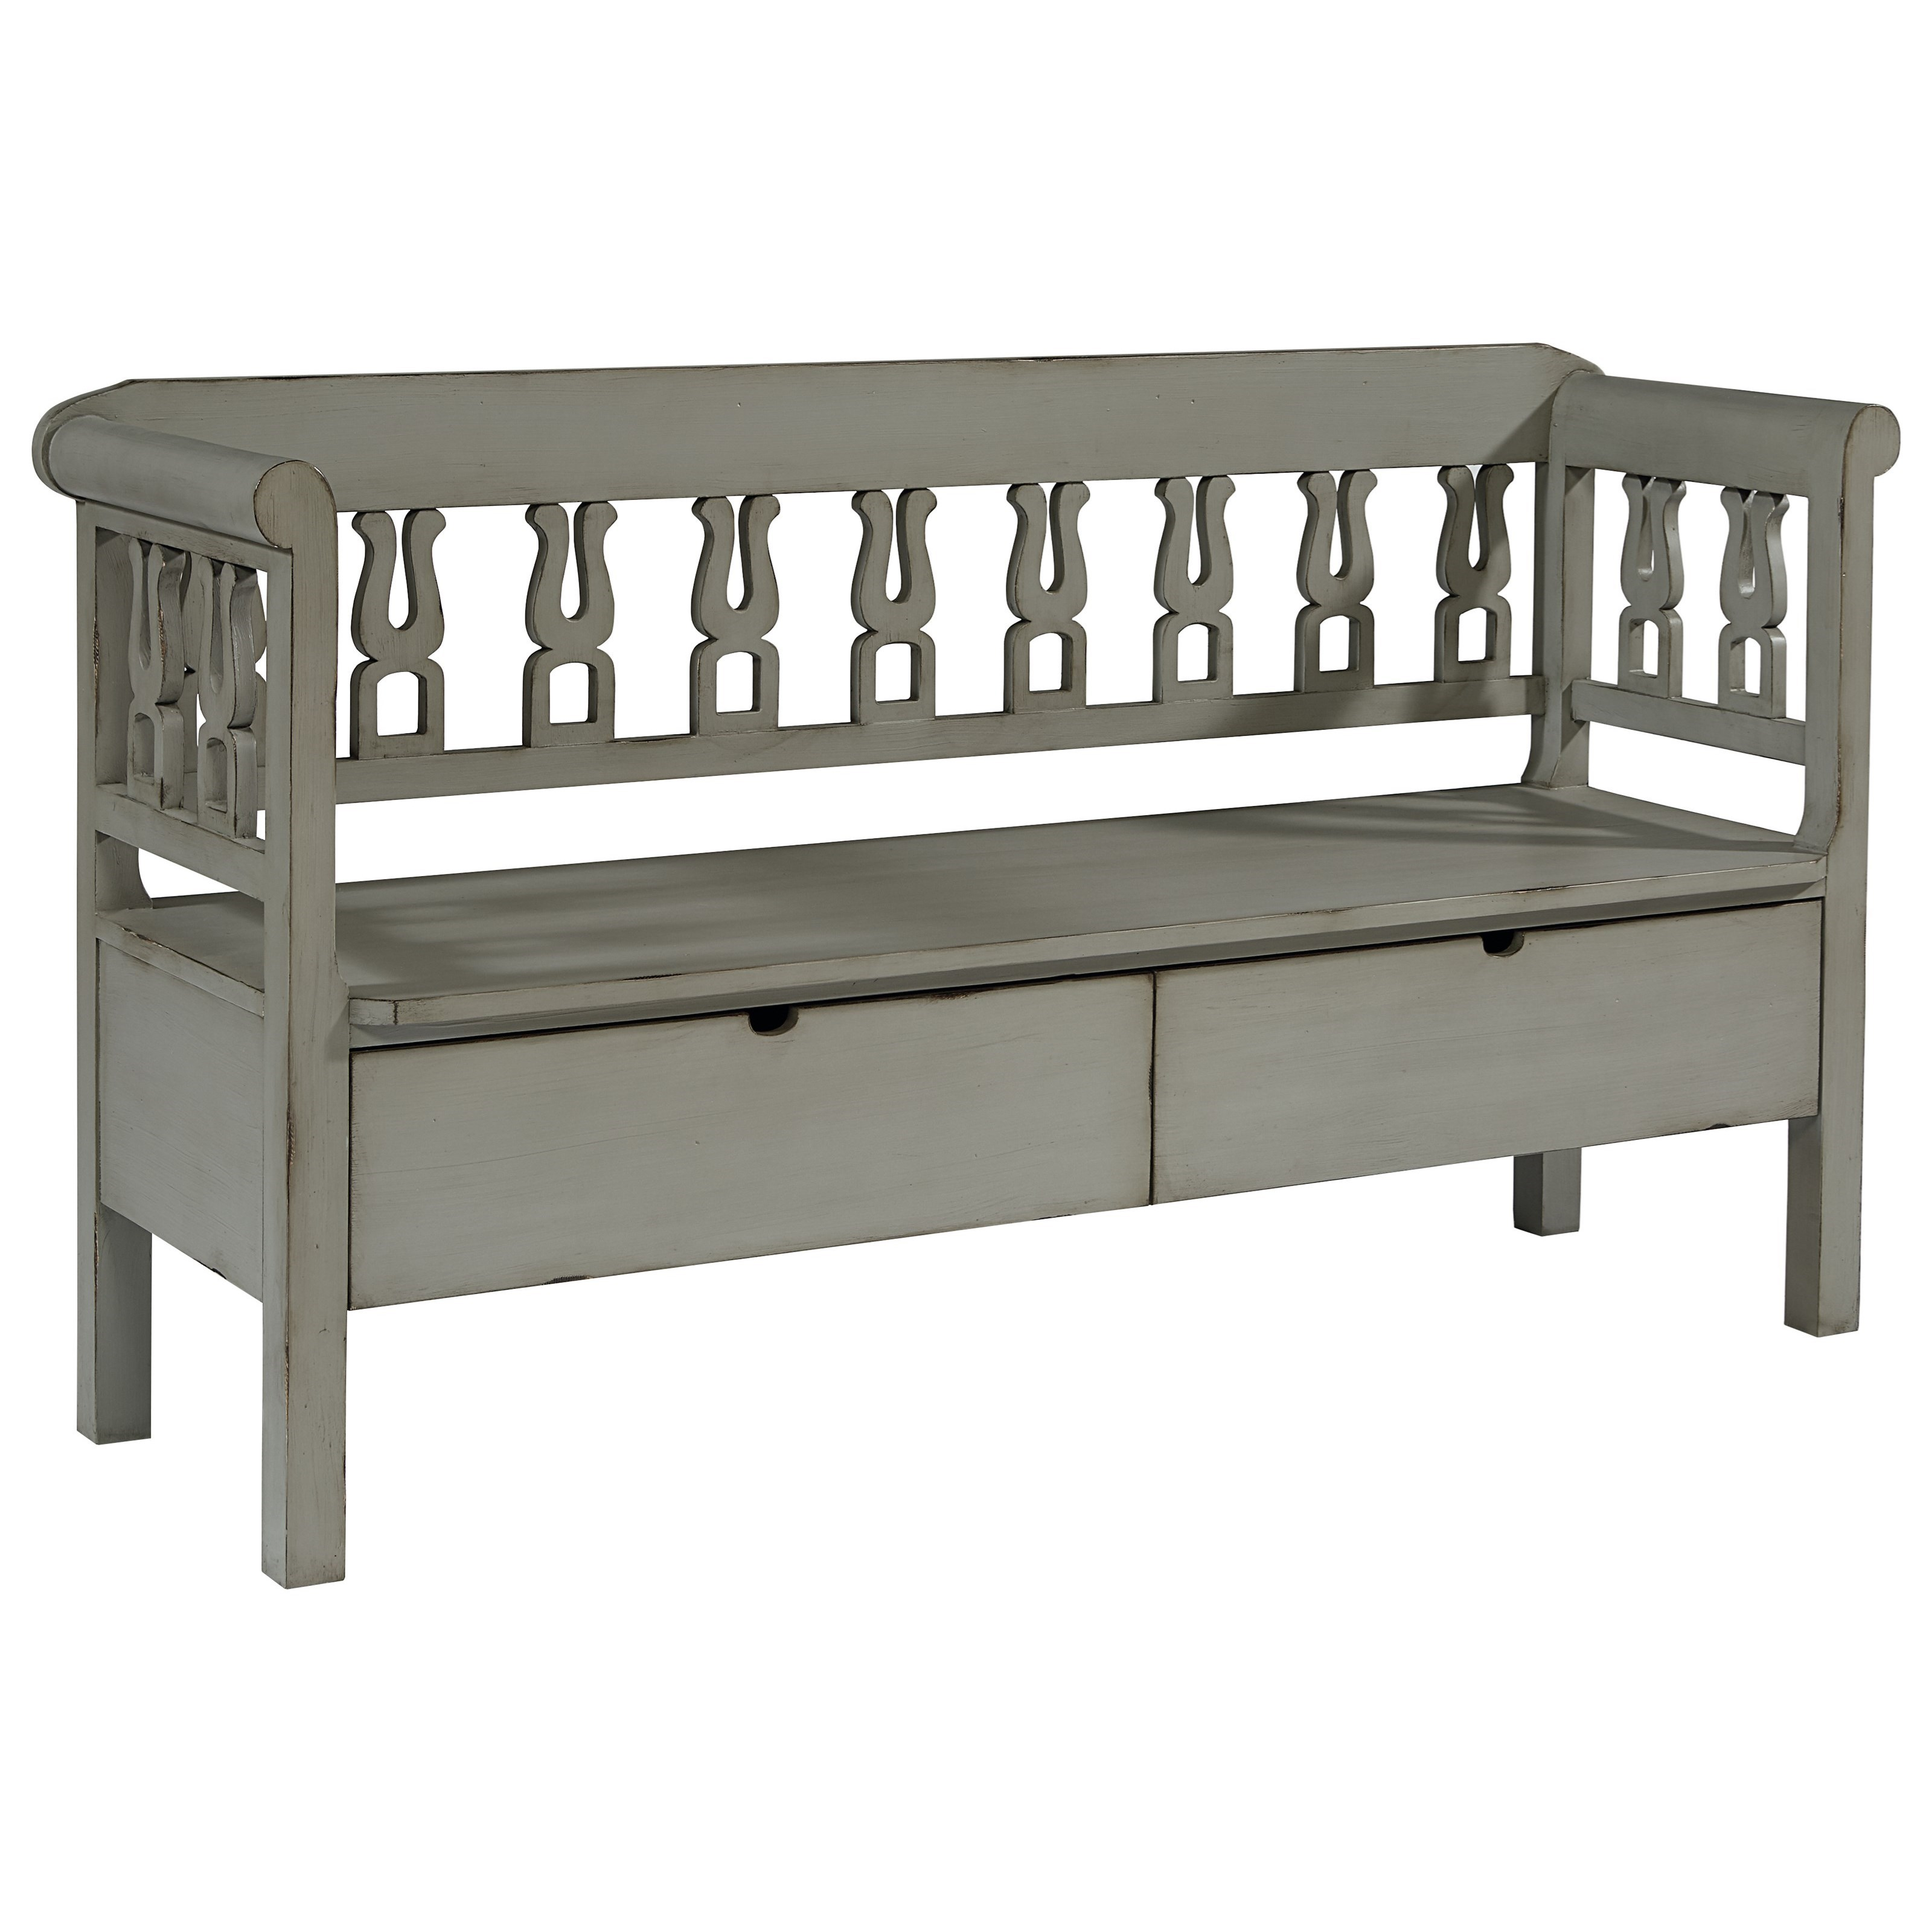 Magnolia Home by Joanna Gaines Accent Elements Bench with Storage - Item Number: 8030102F